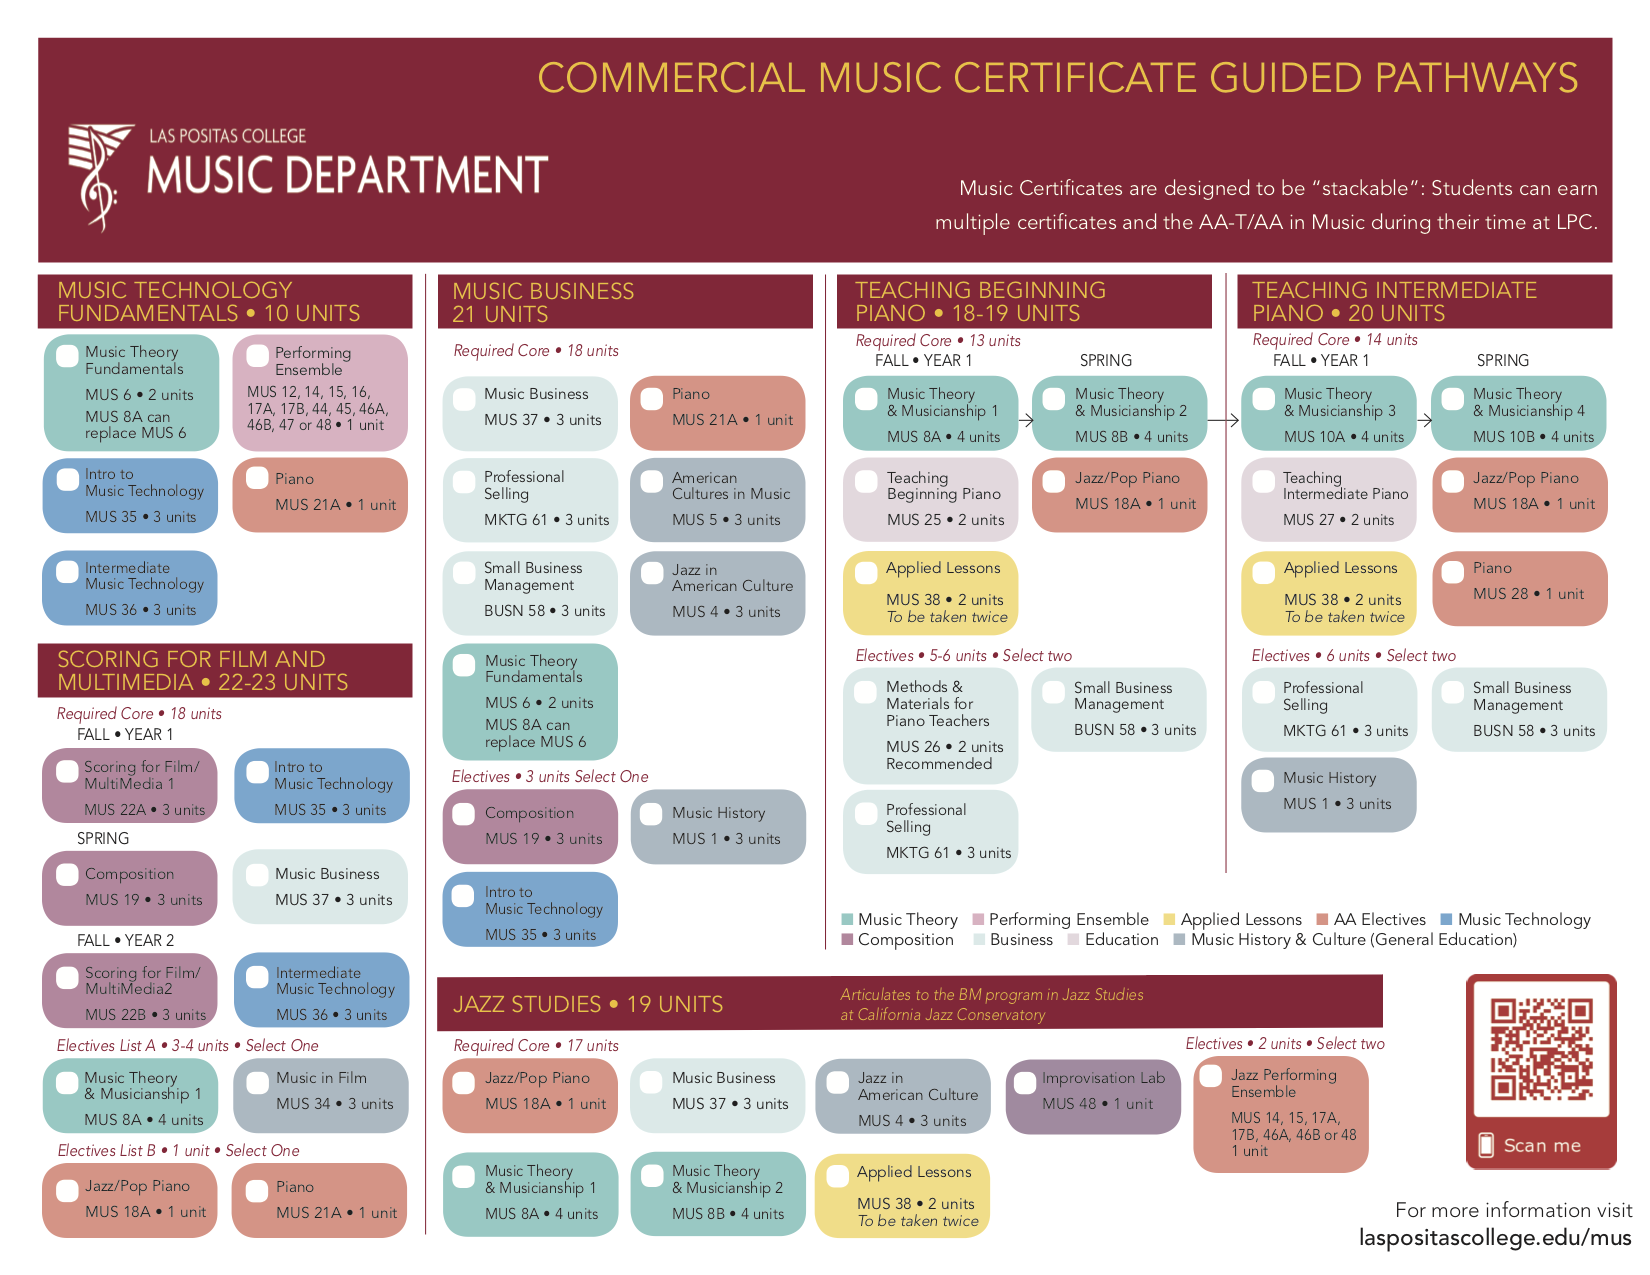 LPC Music Certificate Guided Pathways